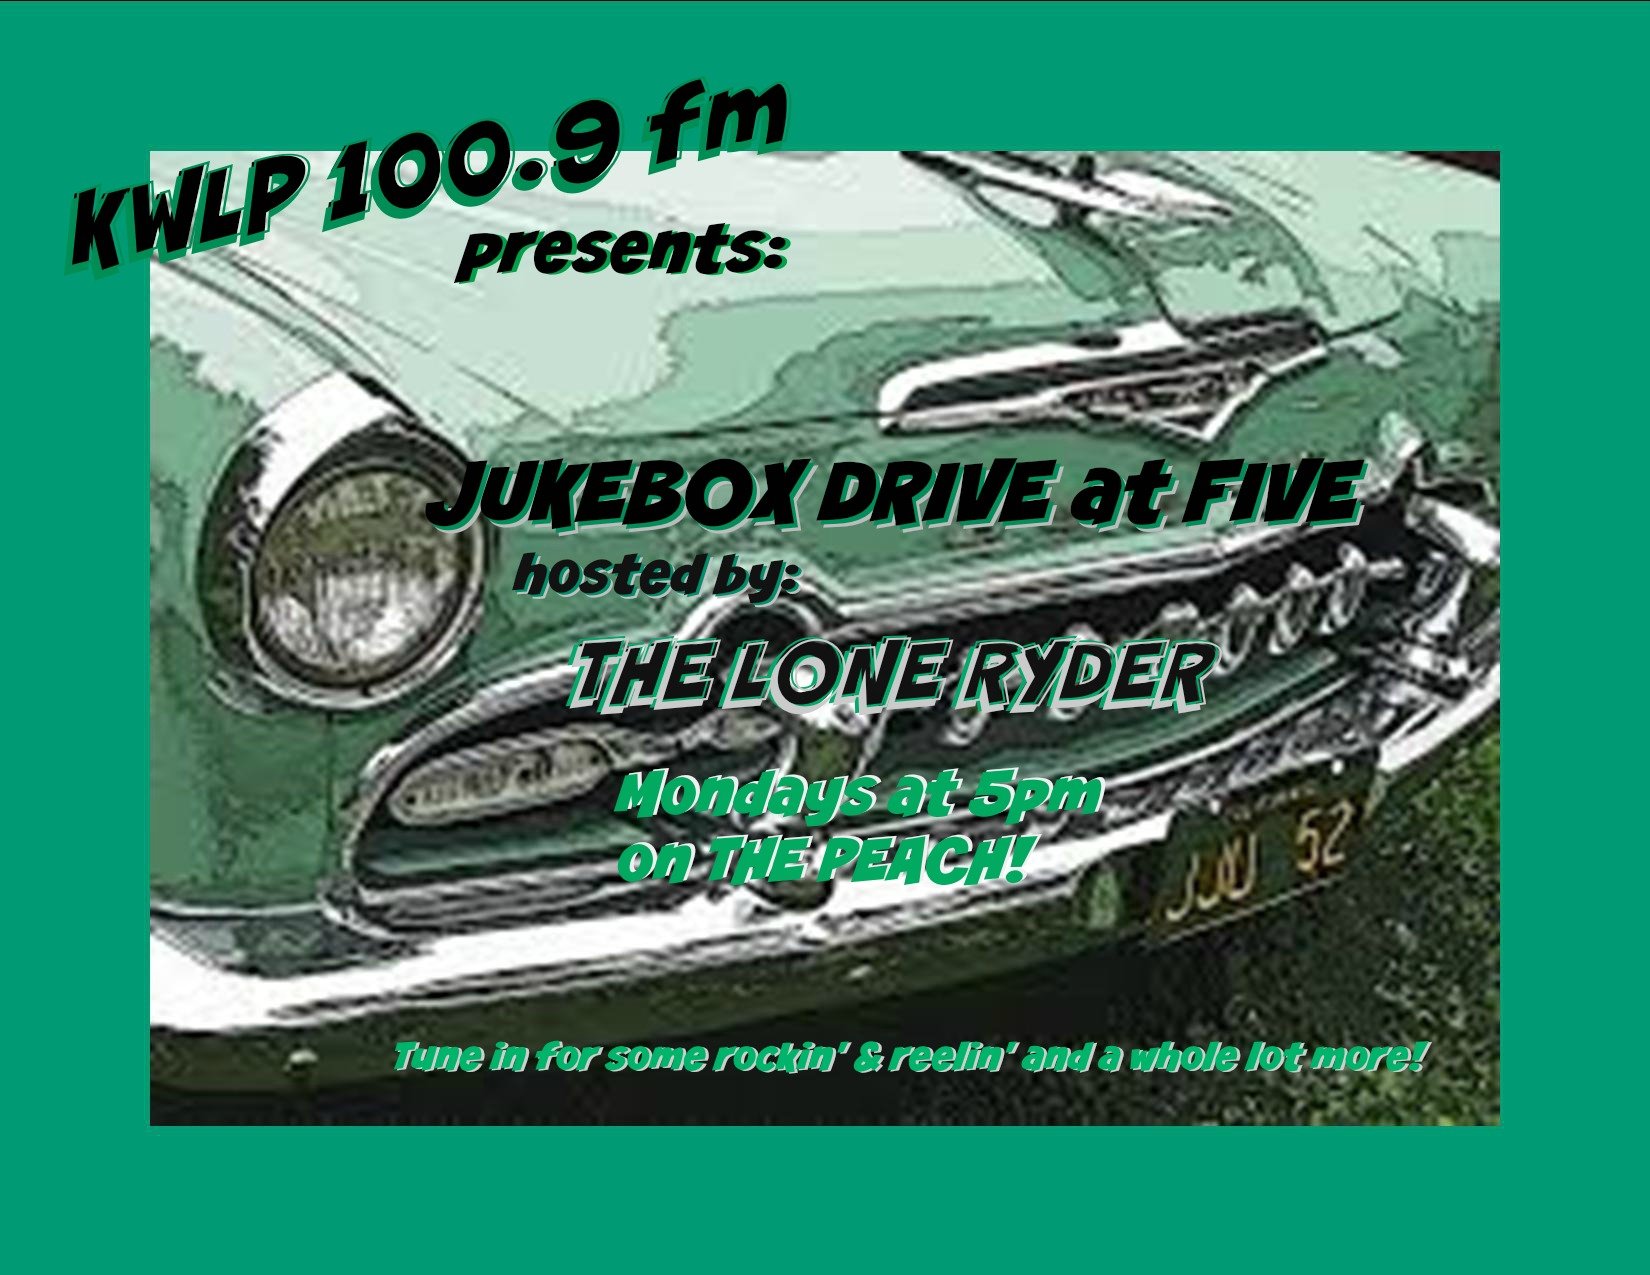 jukebox Drive at Five Promo Flyer